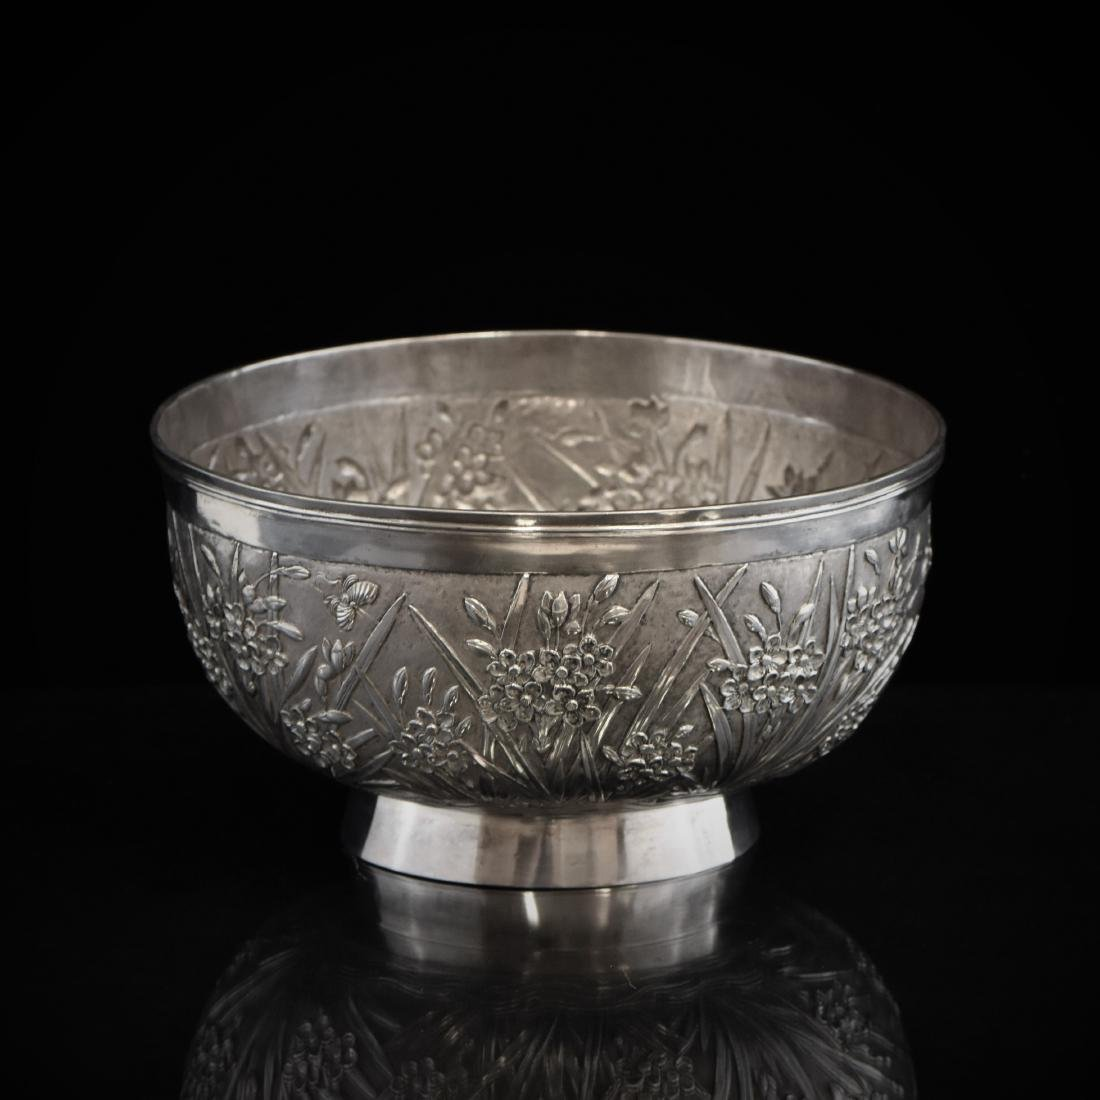 19/20TH C. CHINESE EXPORT SILVER FLORAL REPOUSSE BOWL